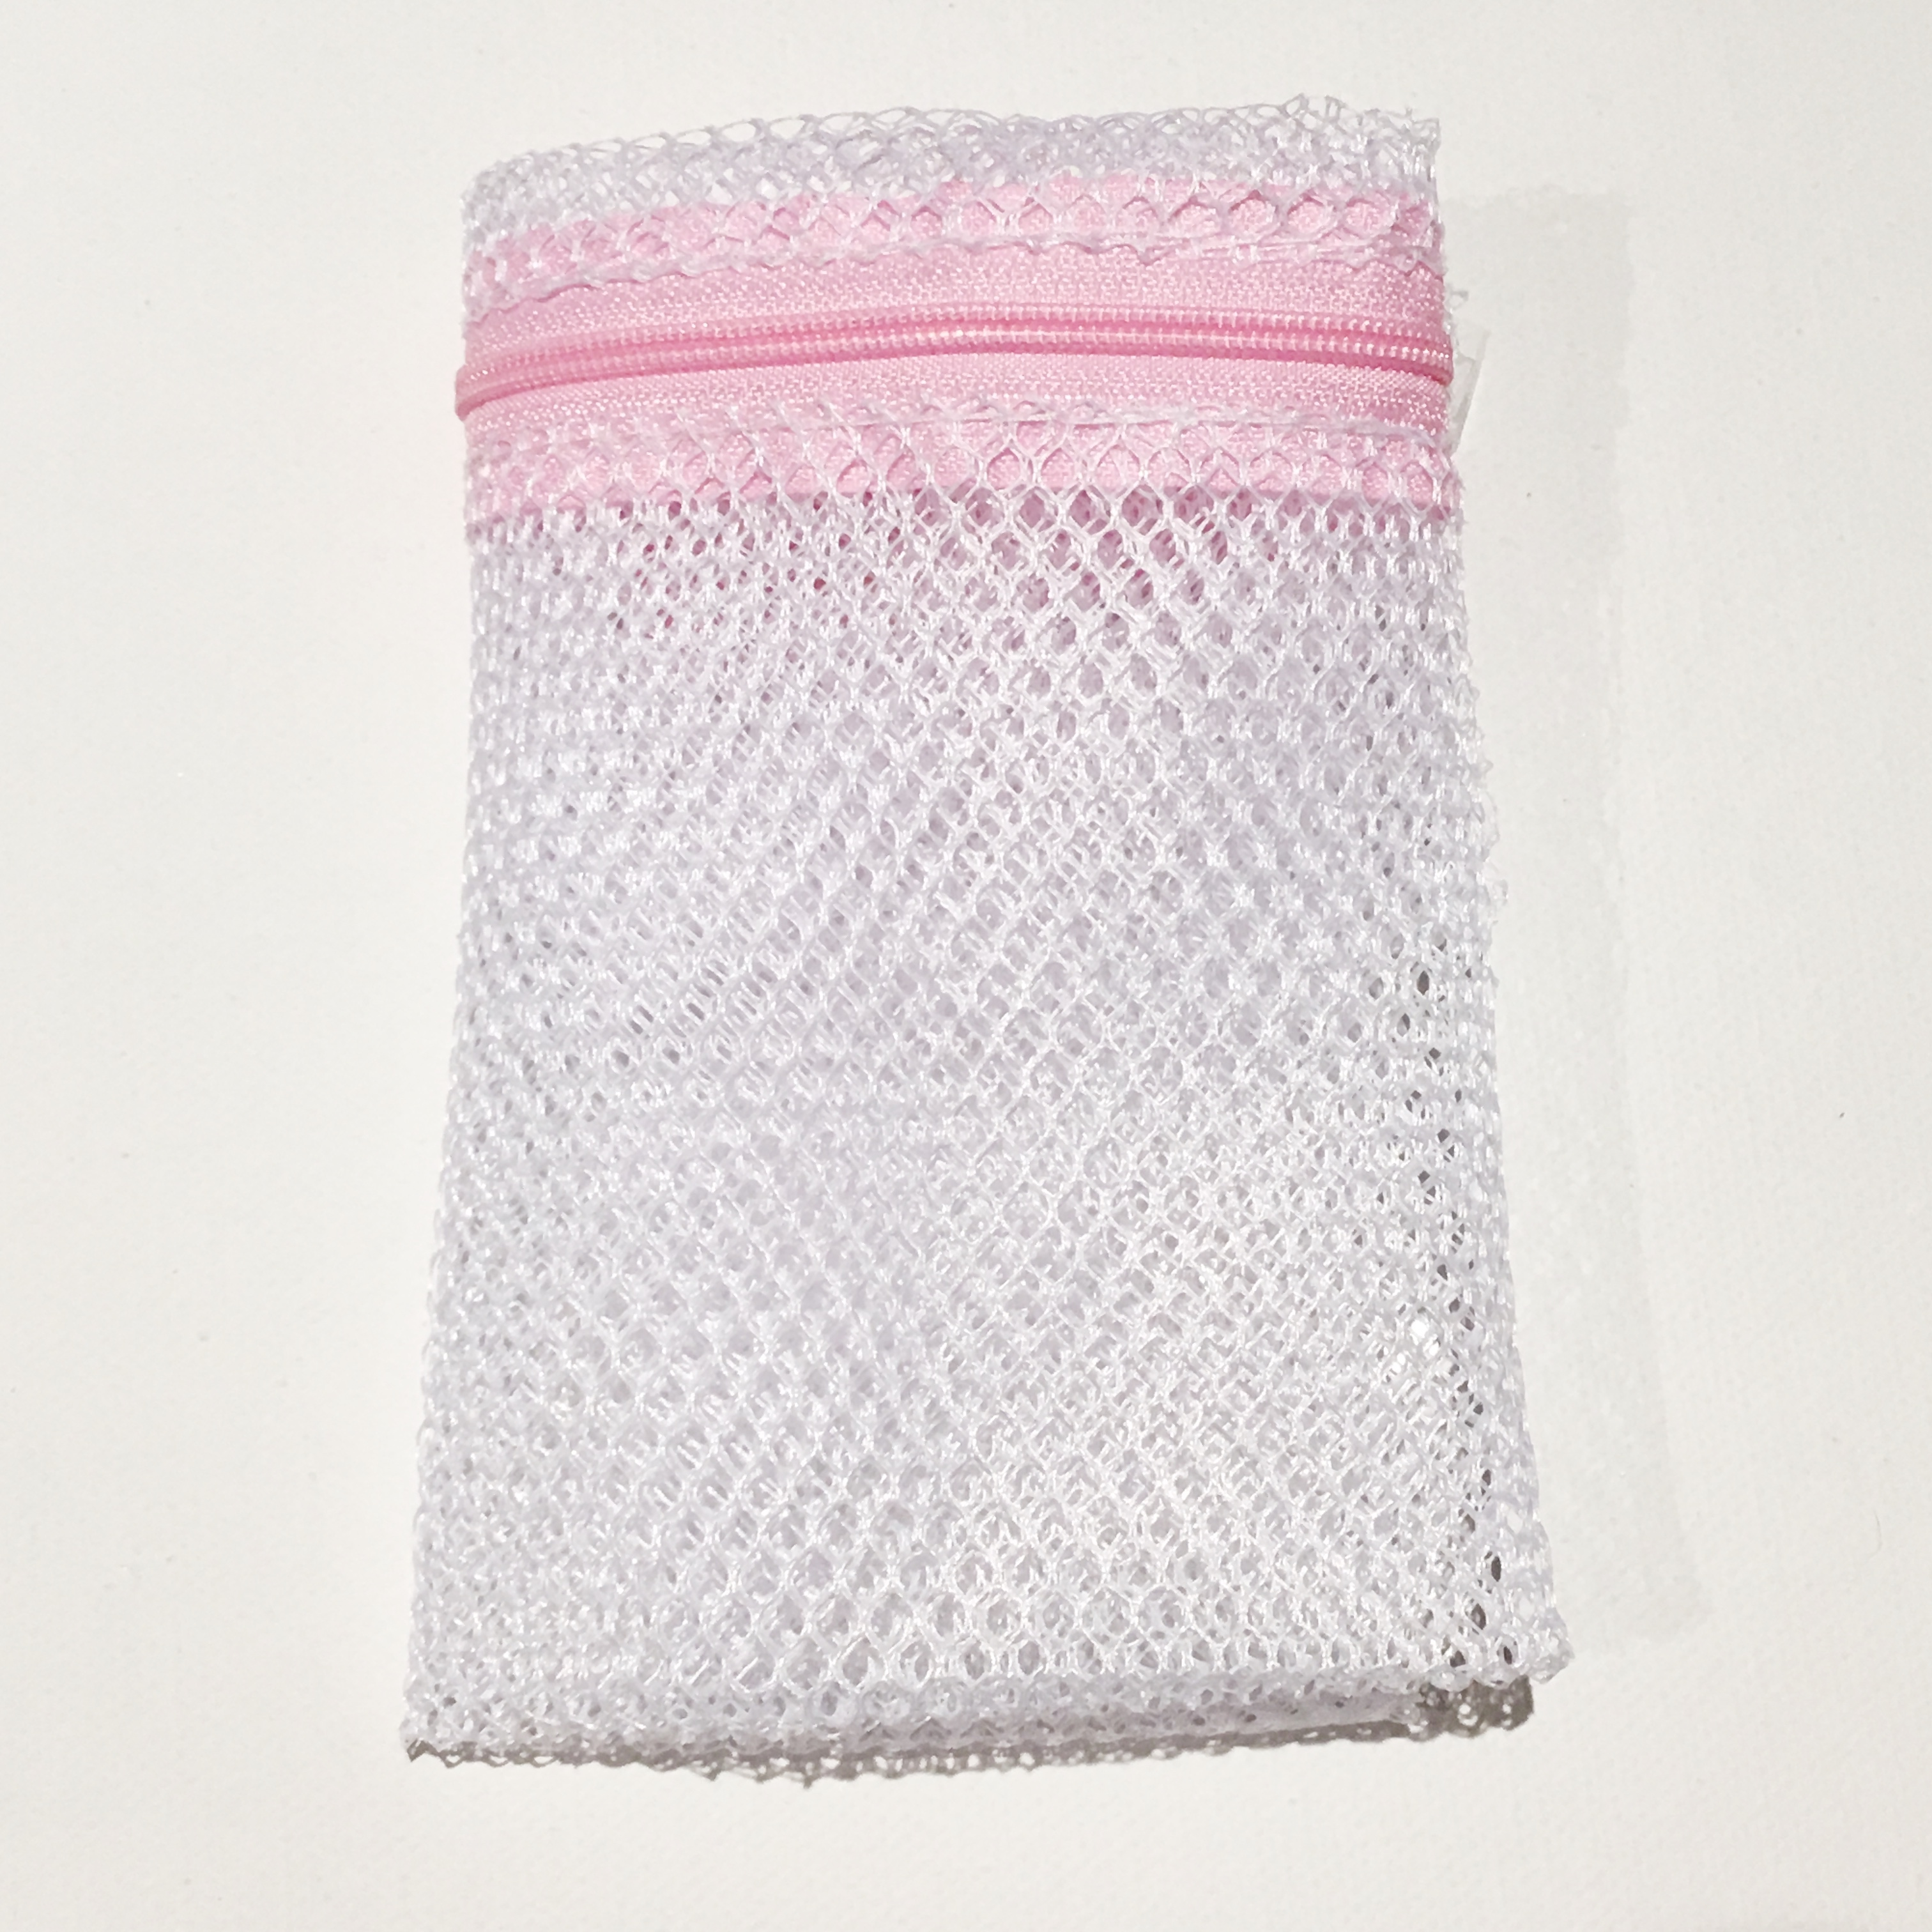 Pack of 5 x Small Reusable and Washable Cotton and Super Soft Bamboo Makeup Remover Wipes.